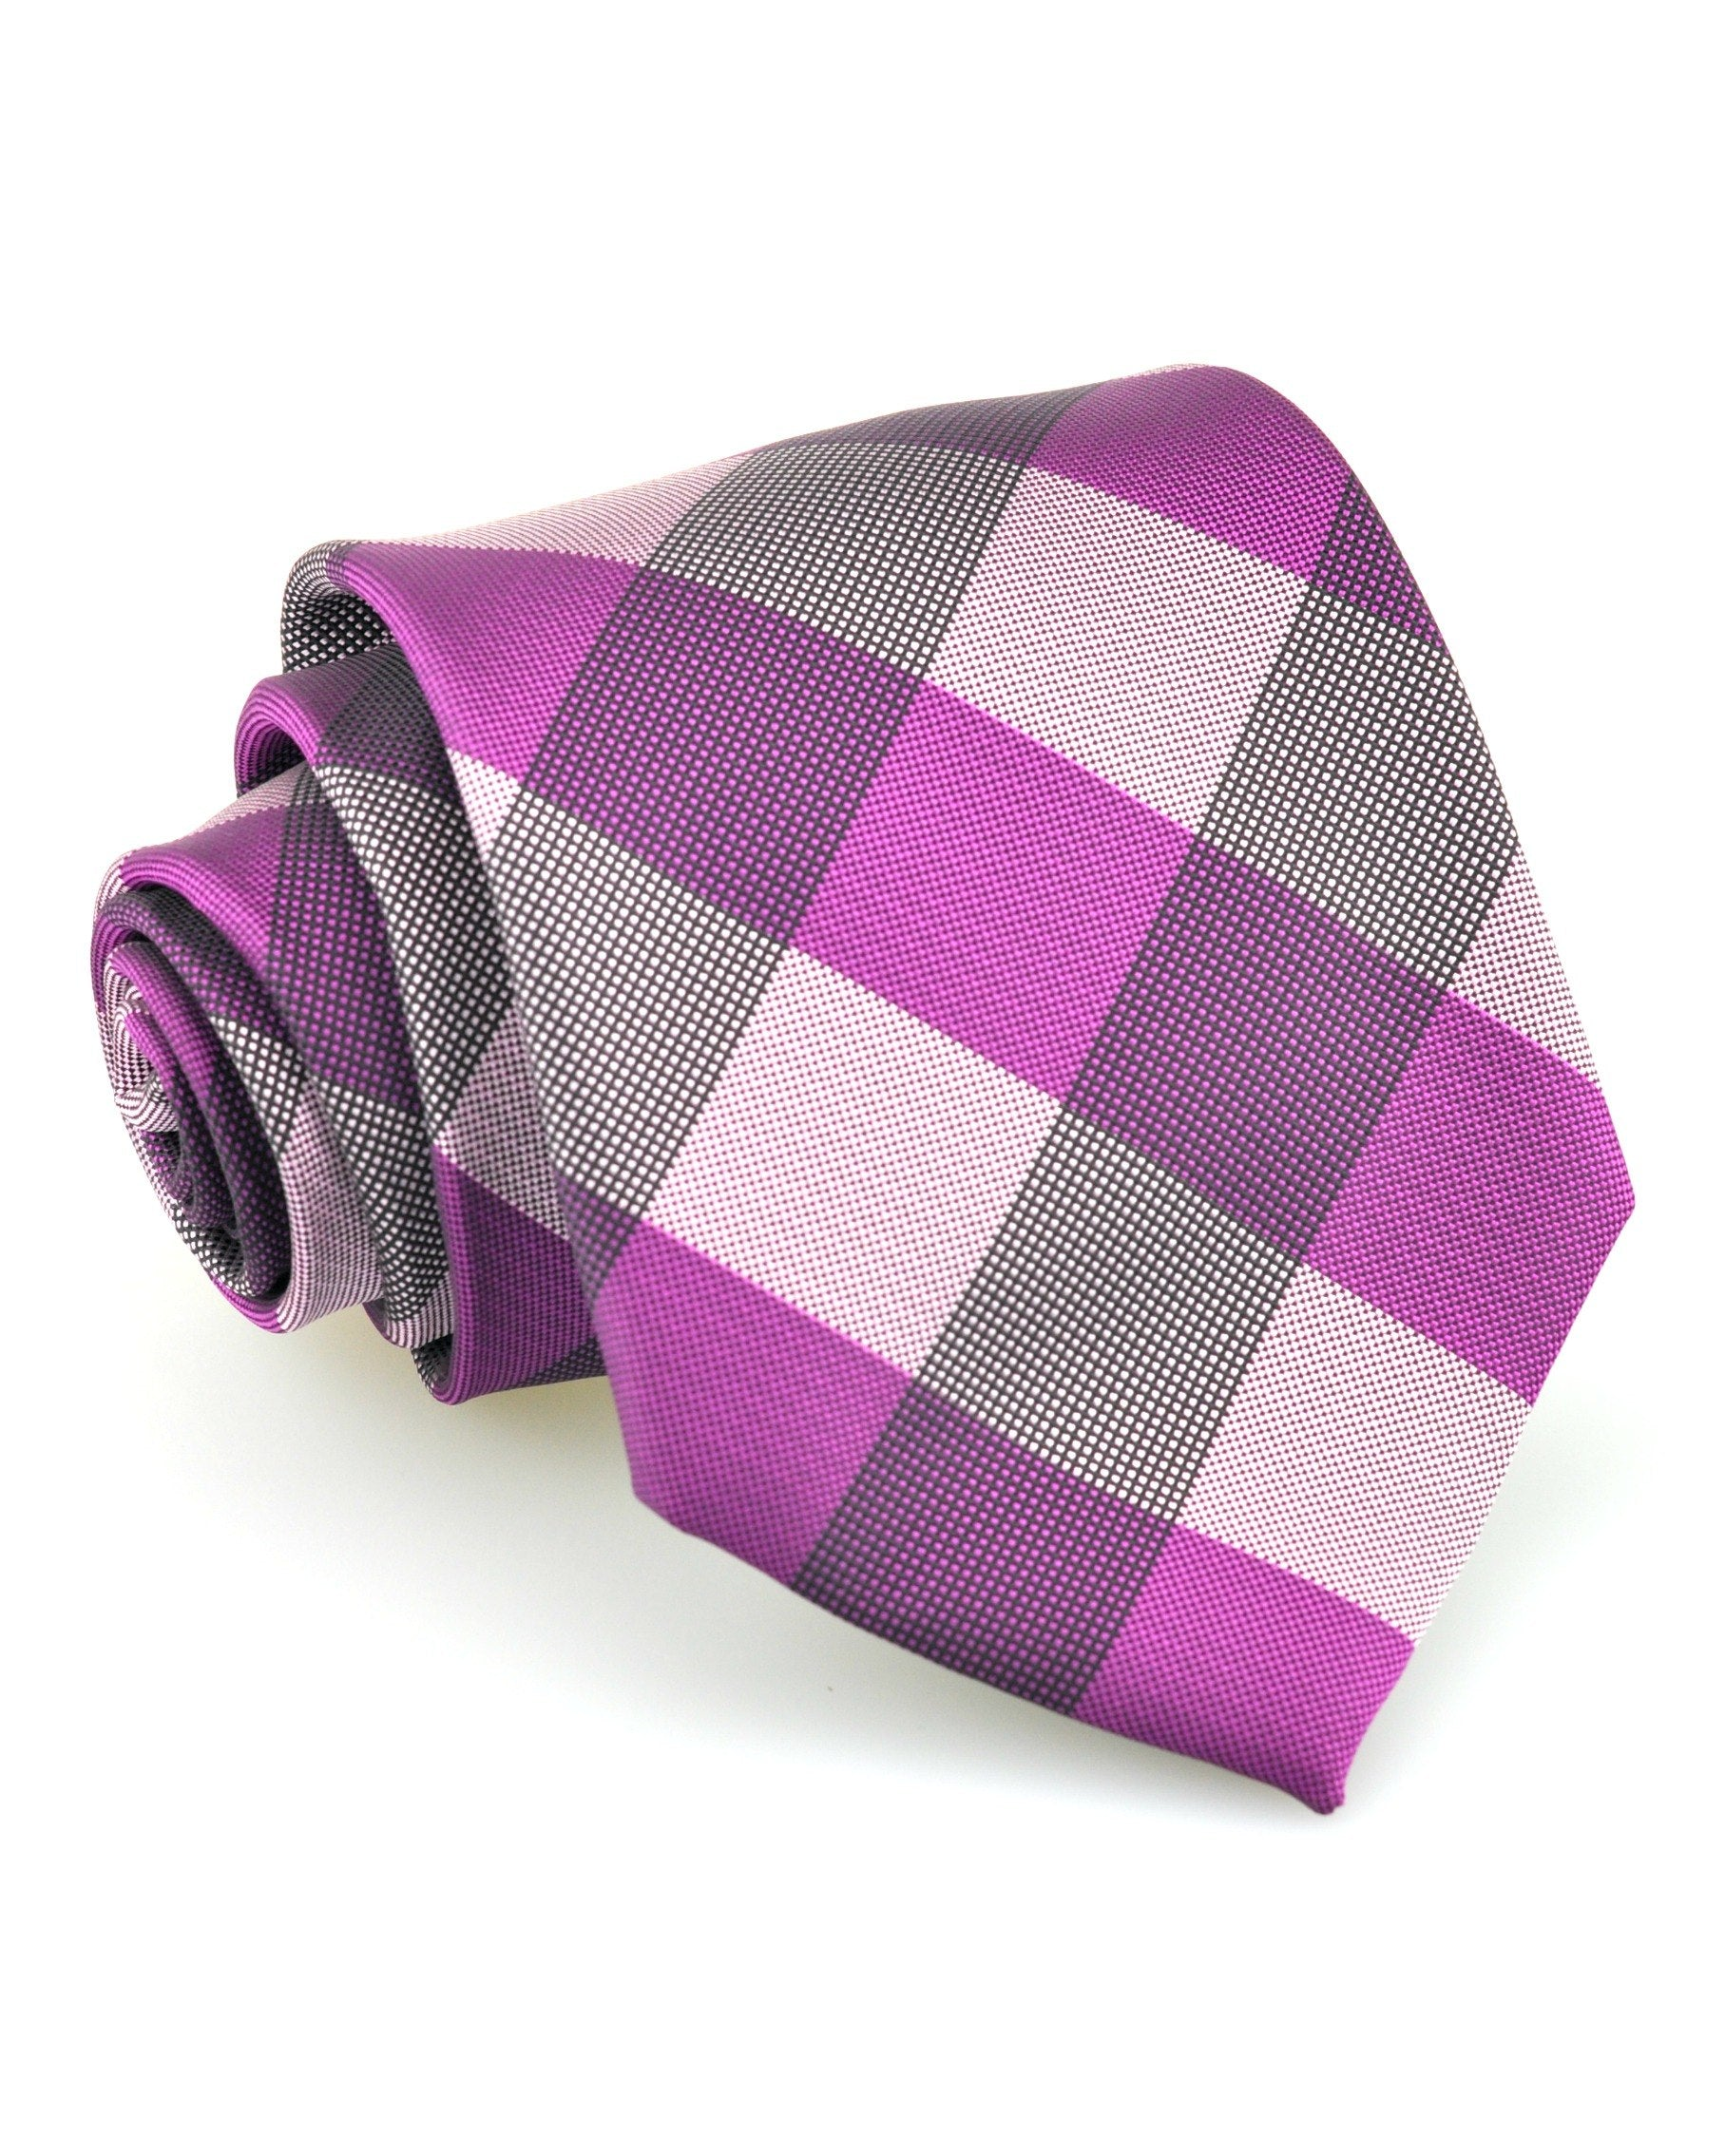 plum-check-dad-tie.jpg